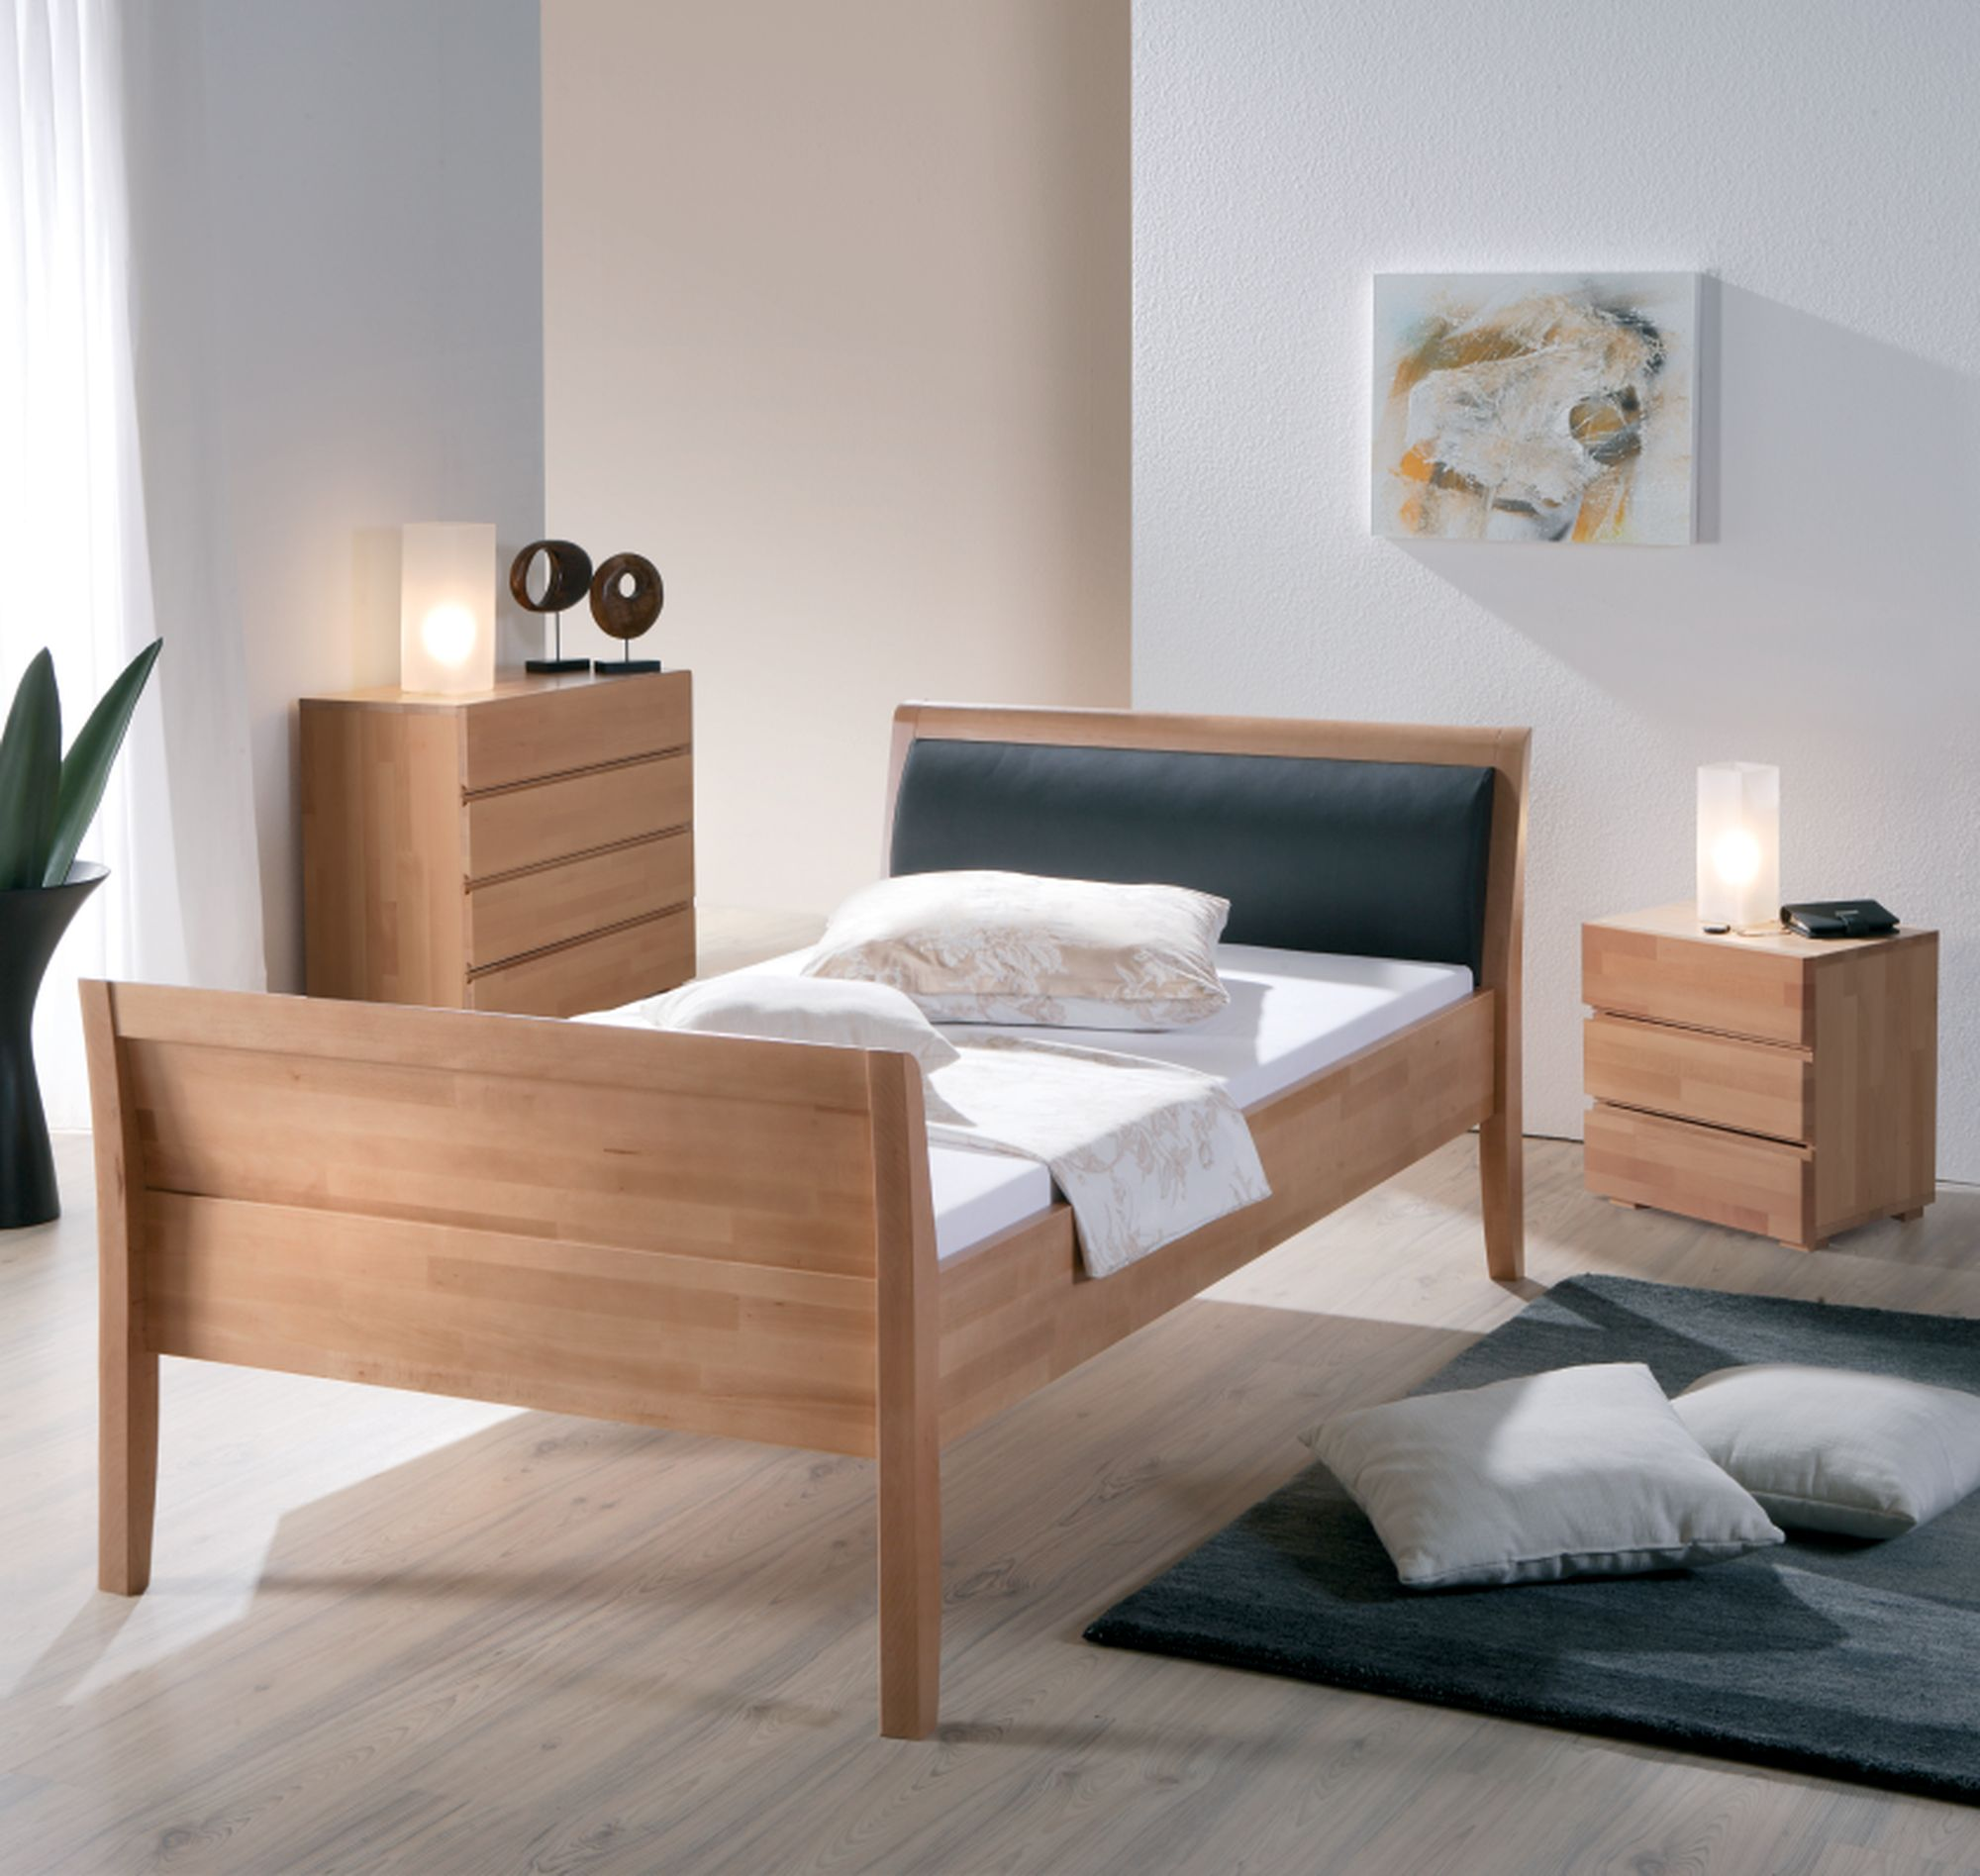 moderne betten schlaffabrik. Black Bedroom Furniture Sets. Home Design Ideas